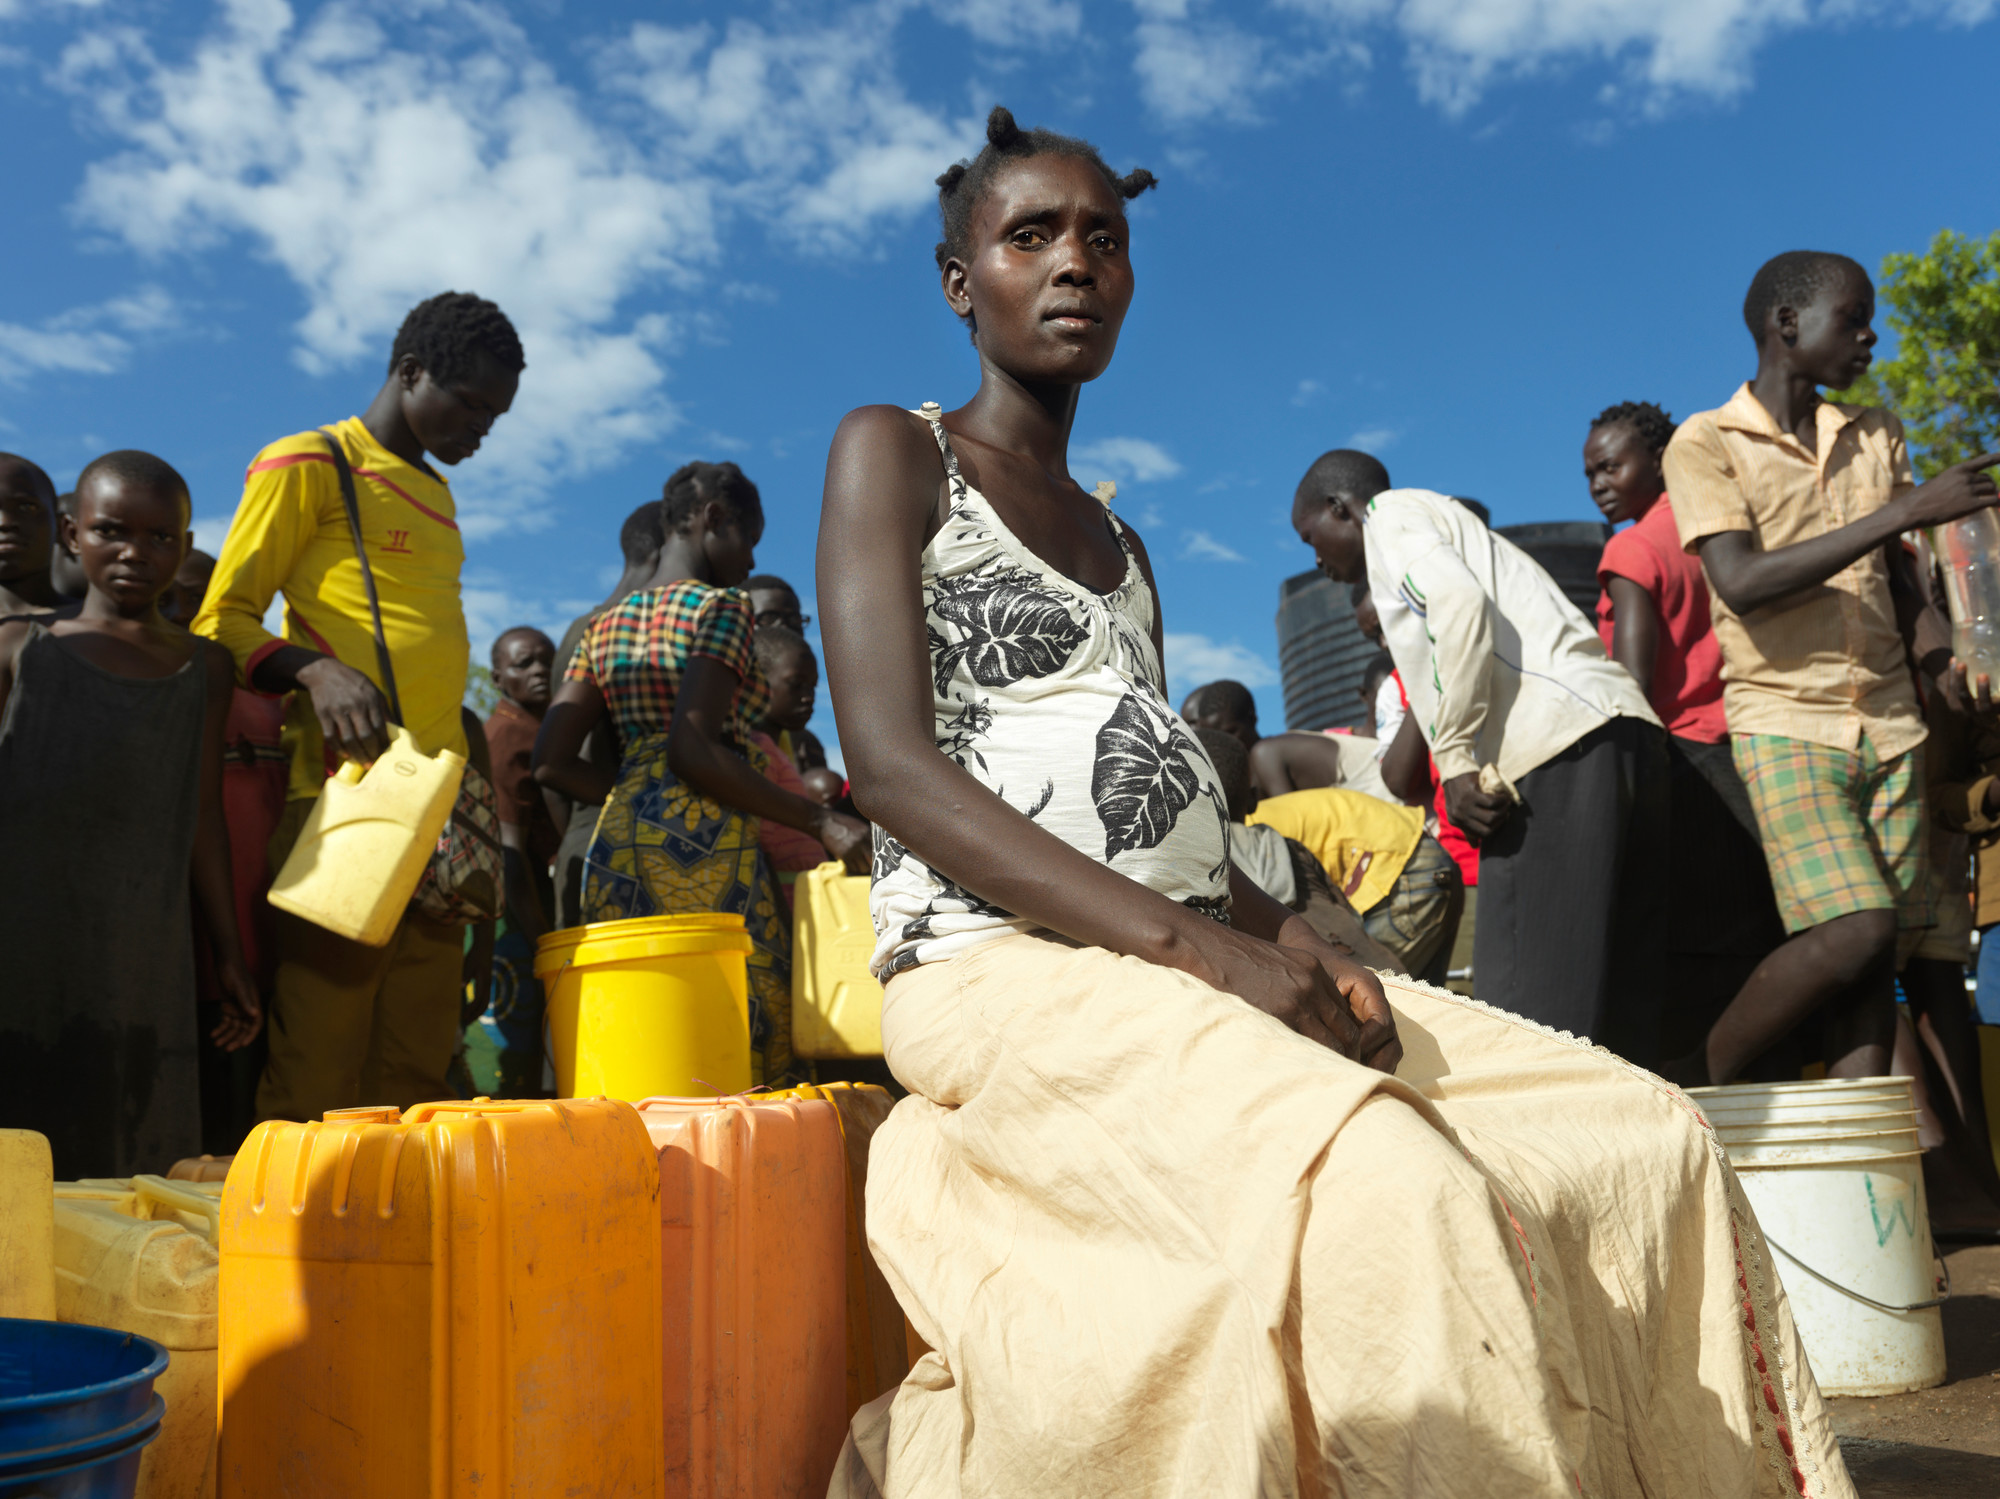 A woman sits on jerry cans in a crowd of people